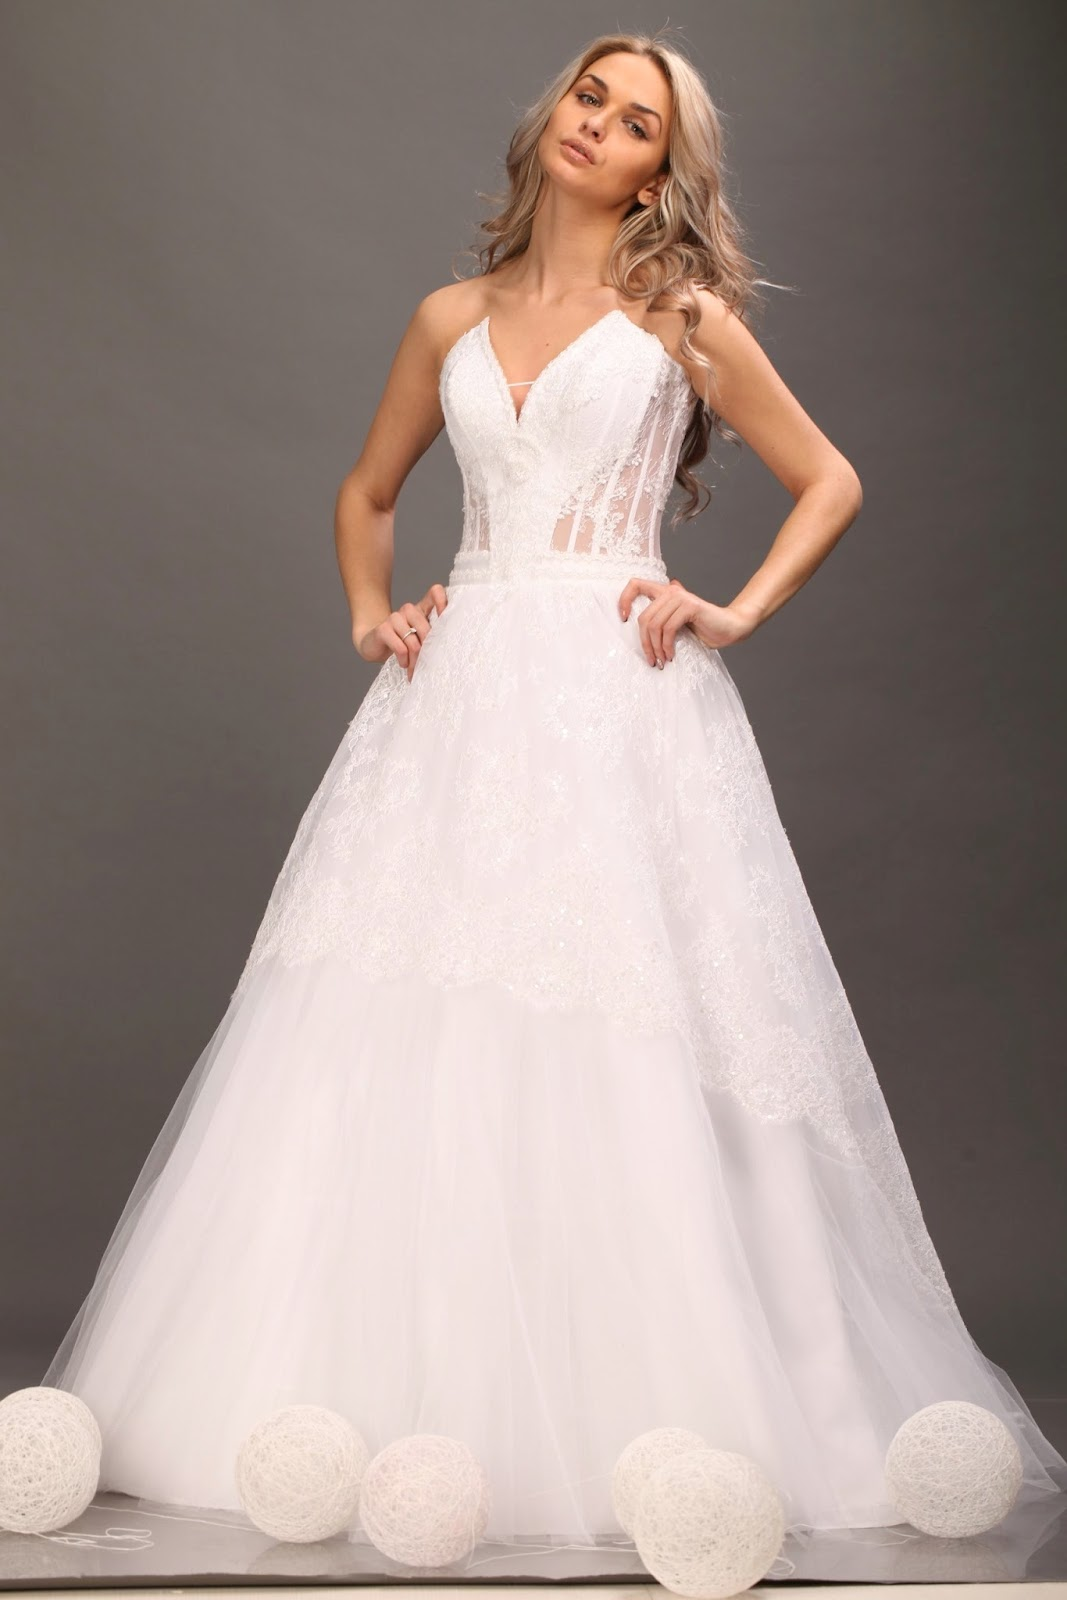 Affordable Wedding Dresses In NYC, Wedding Dress New York, Wedding Dress  New York City